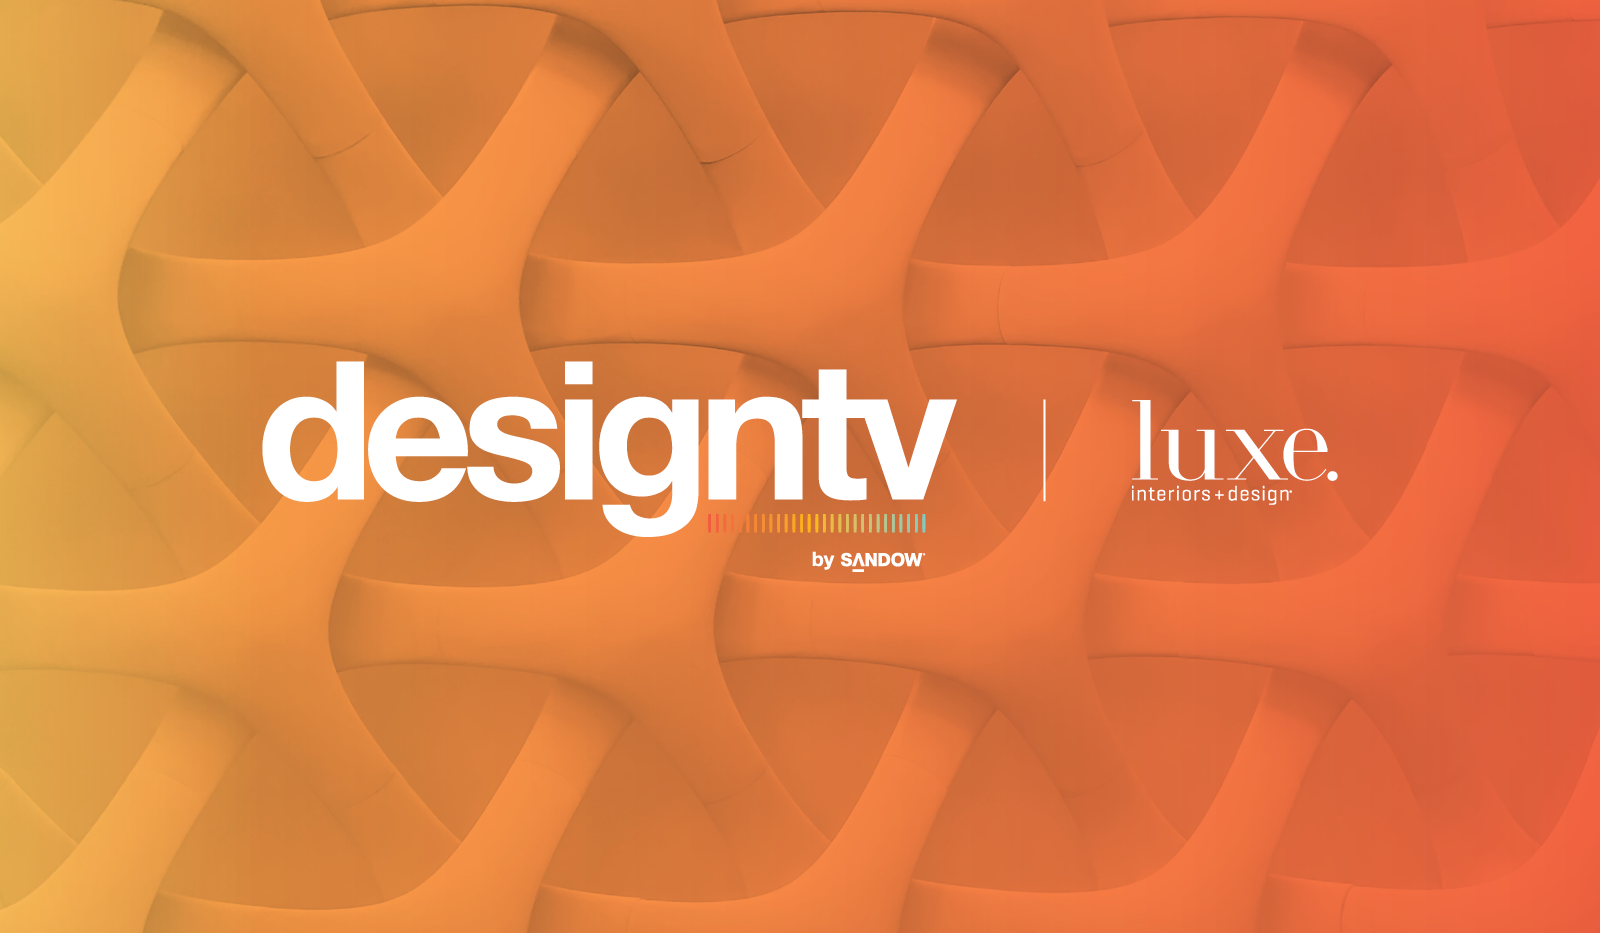 designtv by sandow luxe